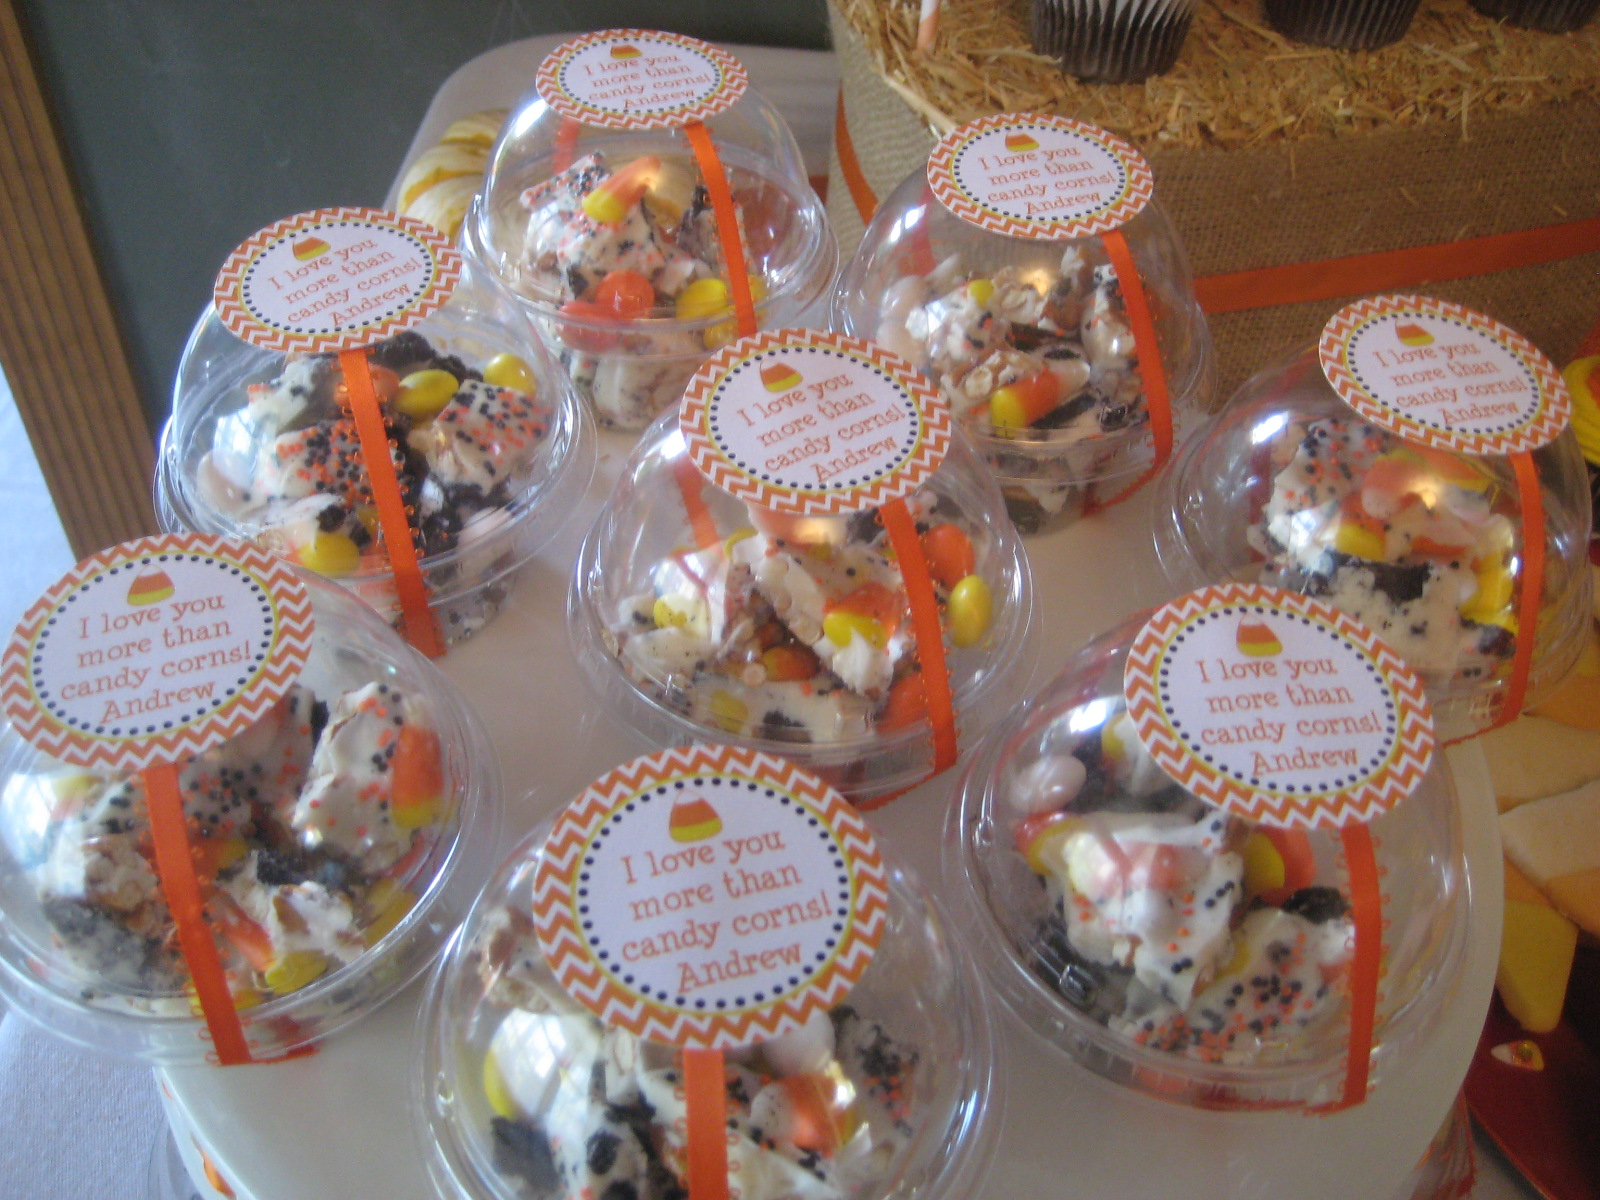 & Candy Corn Birthday Party - The Cards We Drew